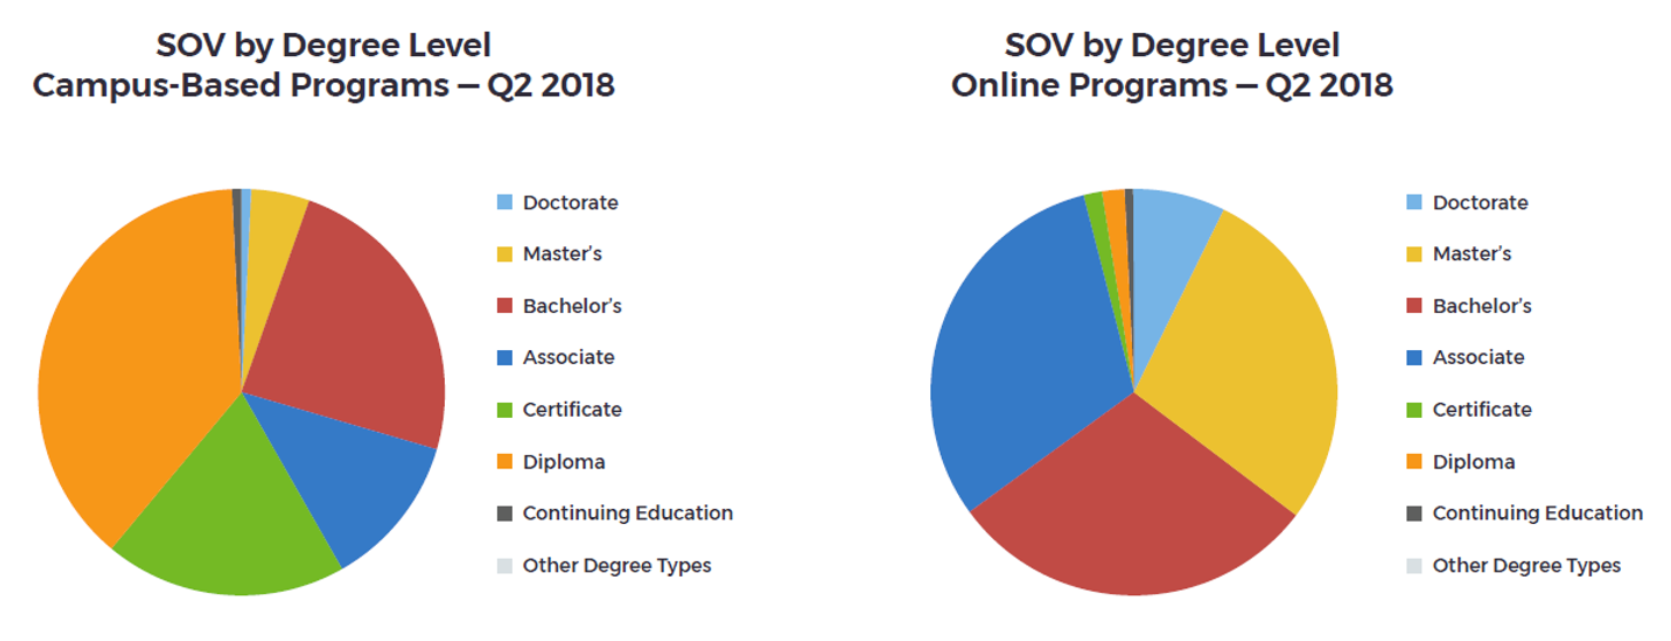 SOV by Degree Level Campus-Based Programs Q2 2018 SOV by Degree Level Online Programs Q2 2018 Chart Digital Media Solutions DMS